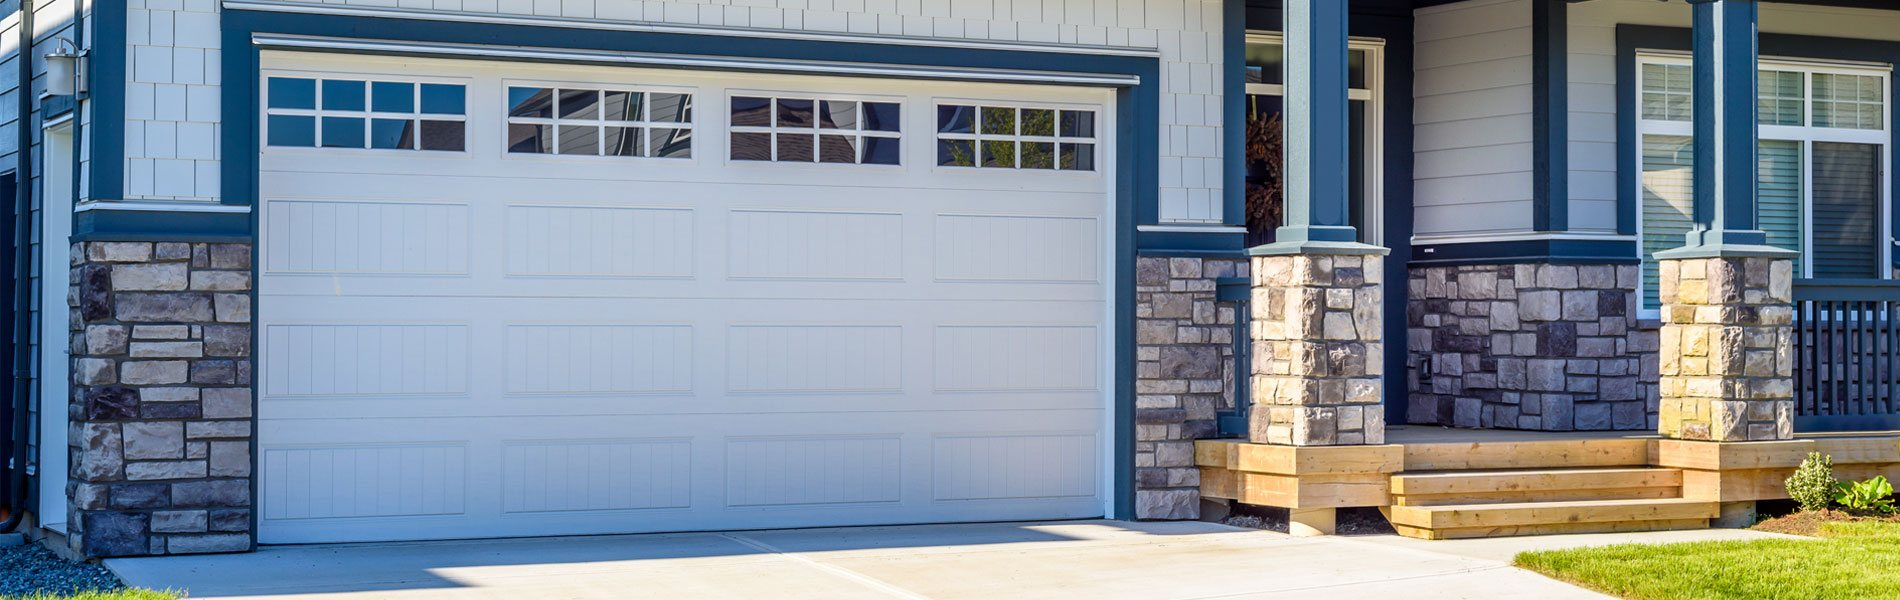 Neighborhood Garage Door Garland, TX 972-538-2329